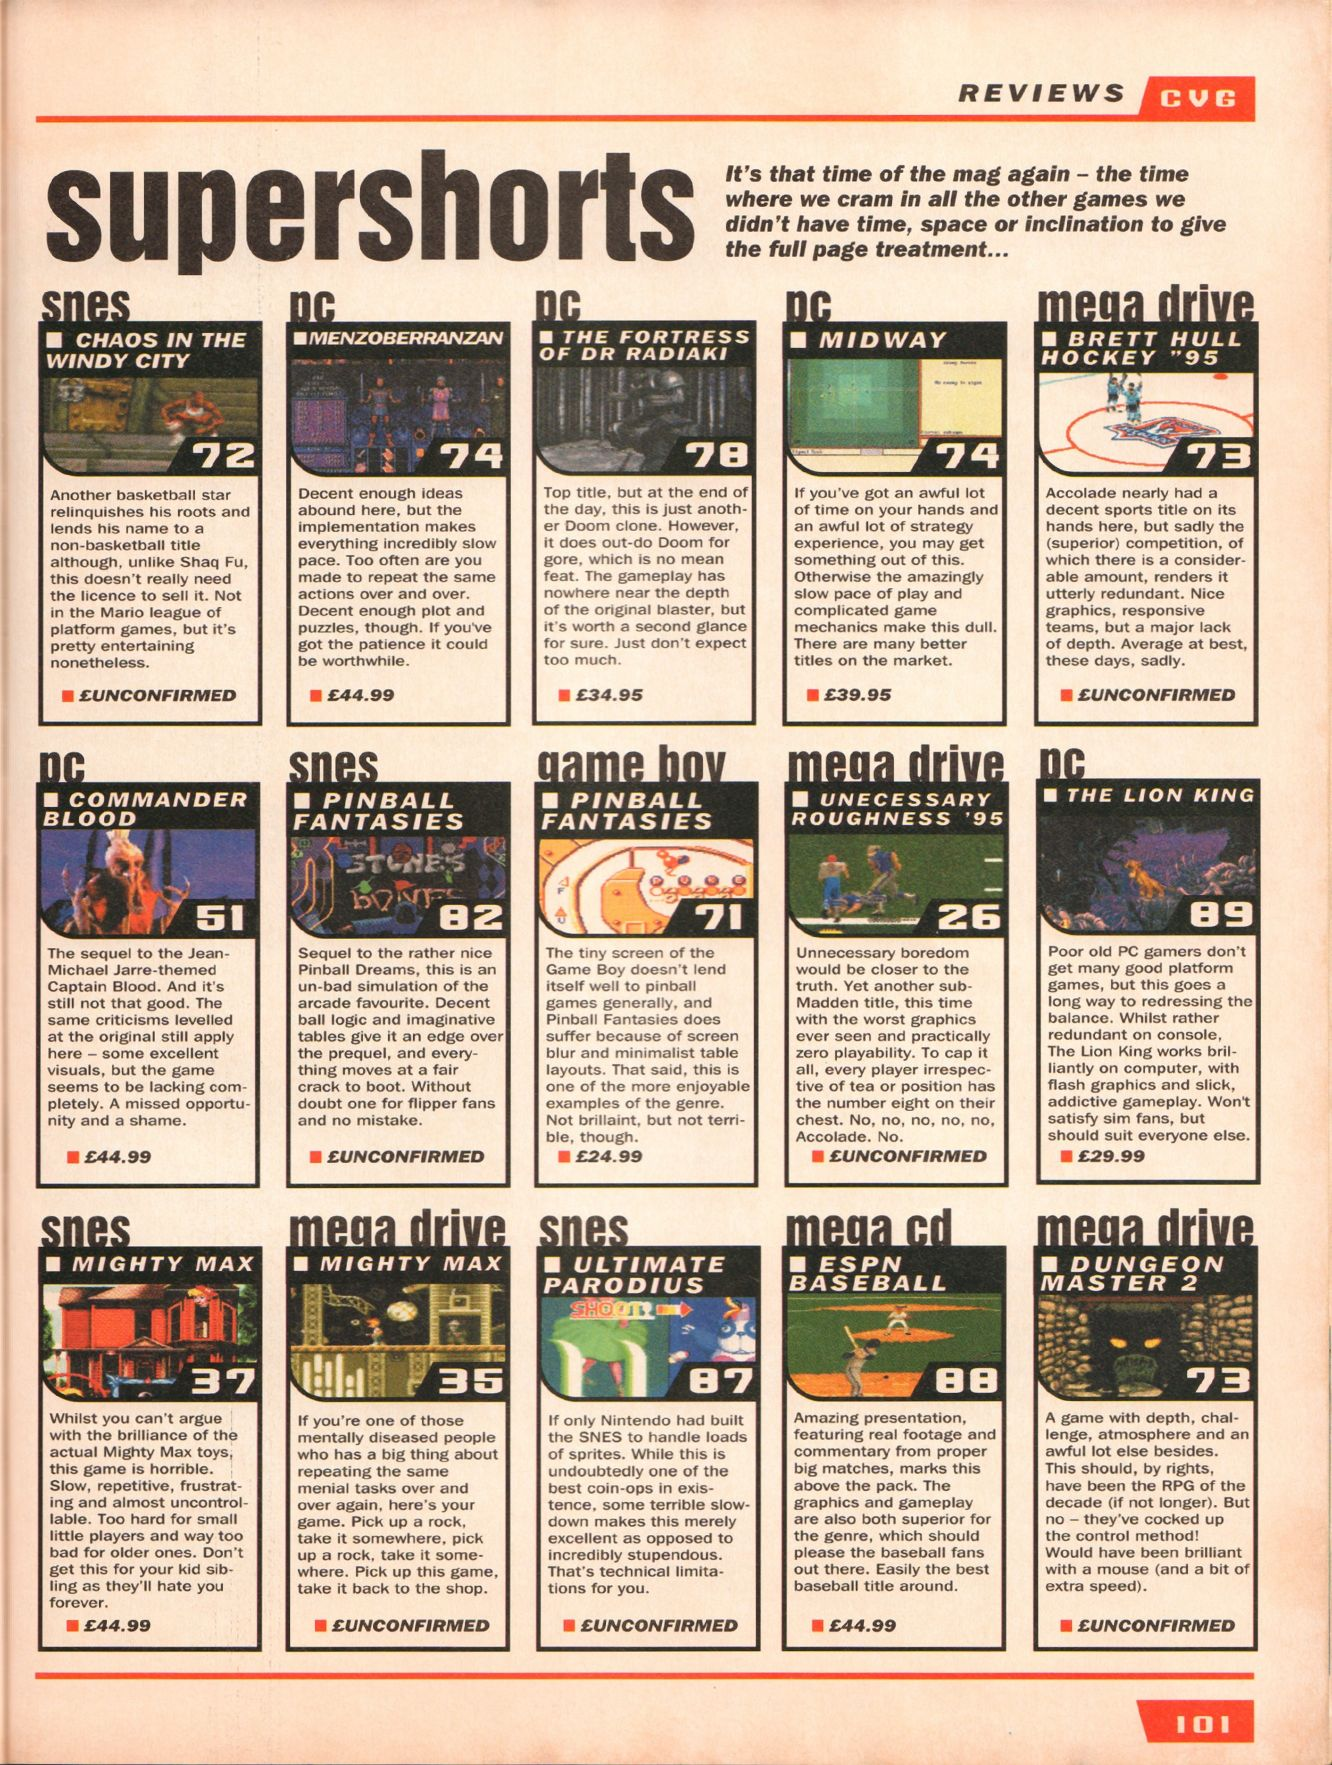 Dungeon Master II for Mega CD Review published in British magazine 'Computer And Video Games', Issue #160 March 1995, Page 101